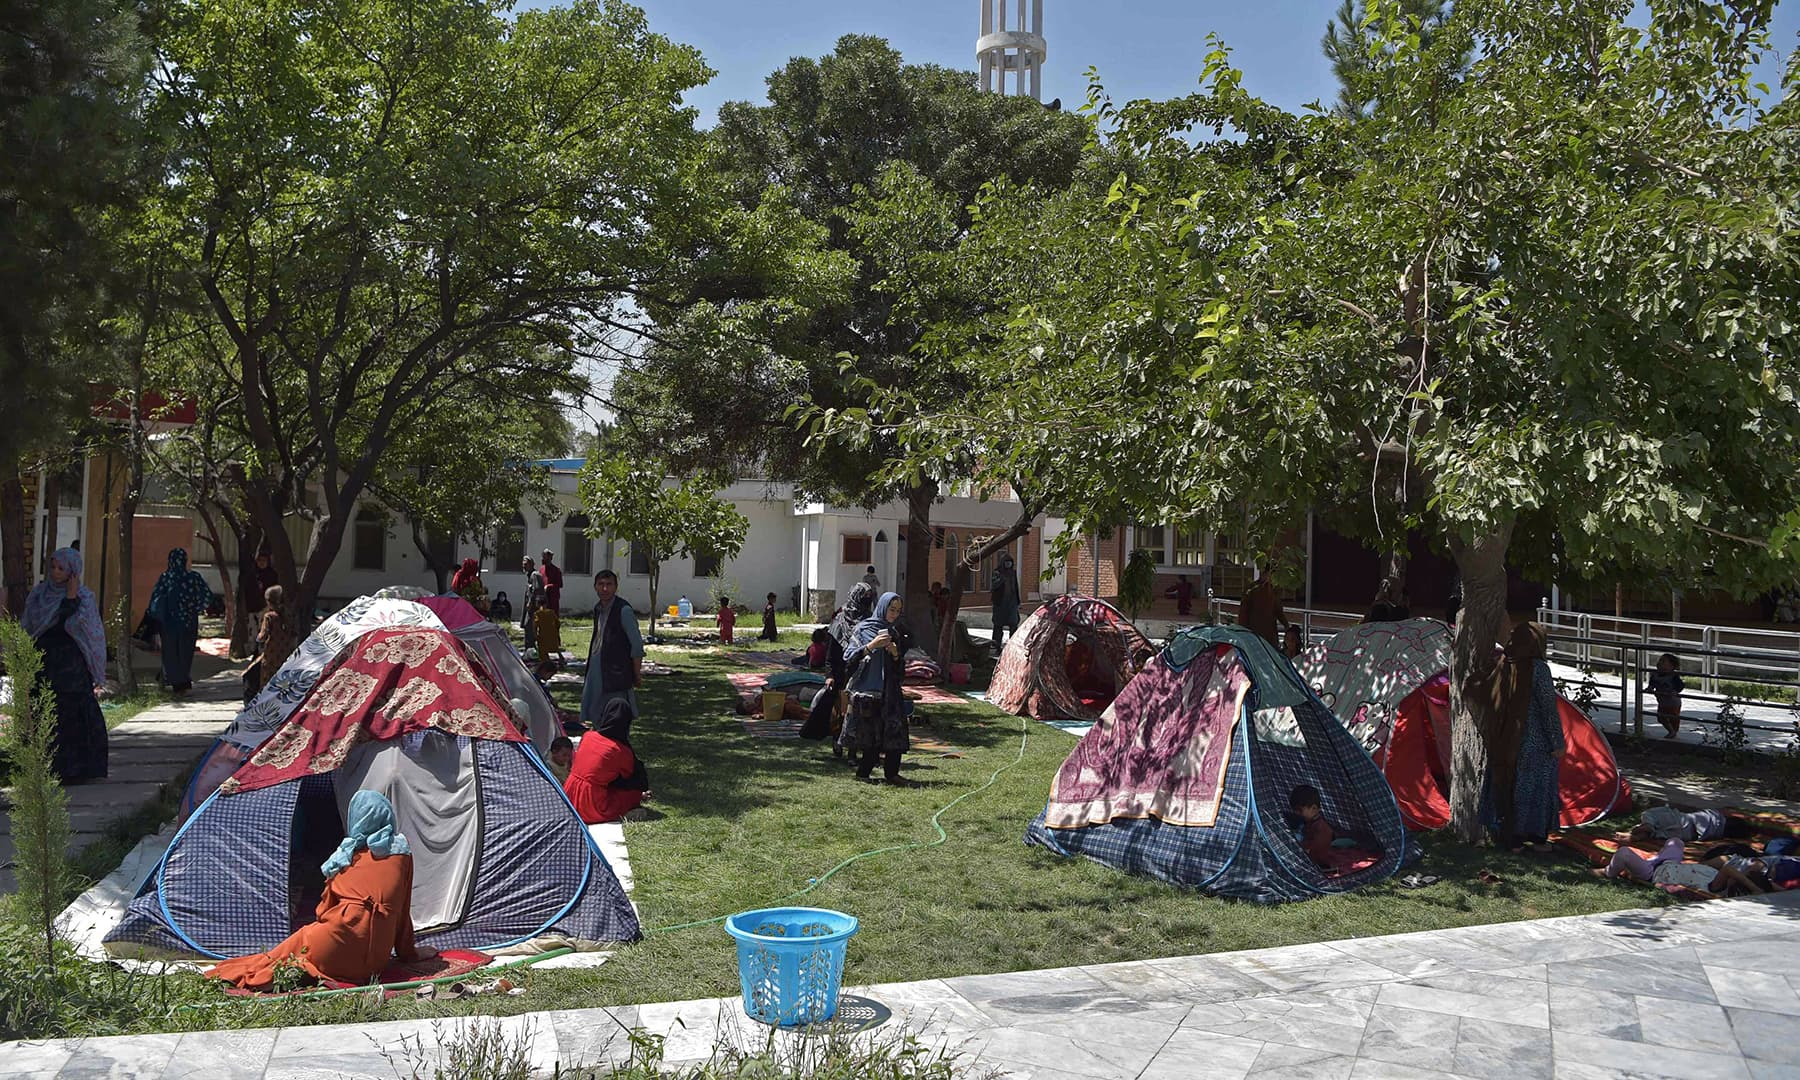 Internally displaced Afghan families, who fled from the northern province due to battles between the Taliban and Afghan security forces, sit in temporary tents in the courtyard of the Wazir Akbar Khan mosque in Kabul on August 13. — AFP